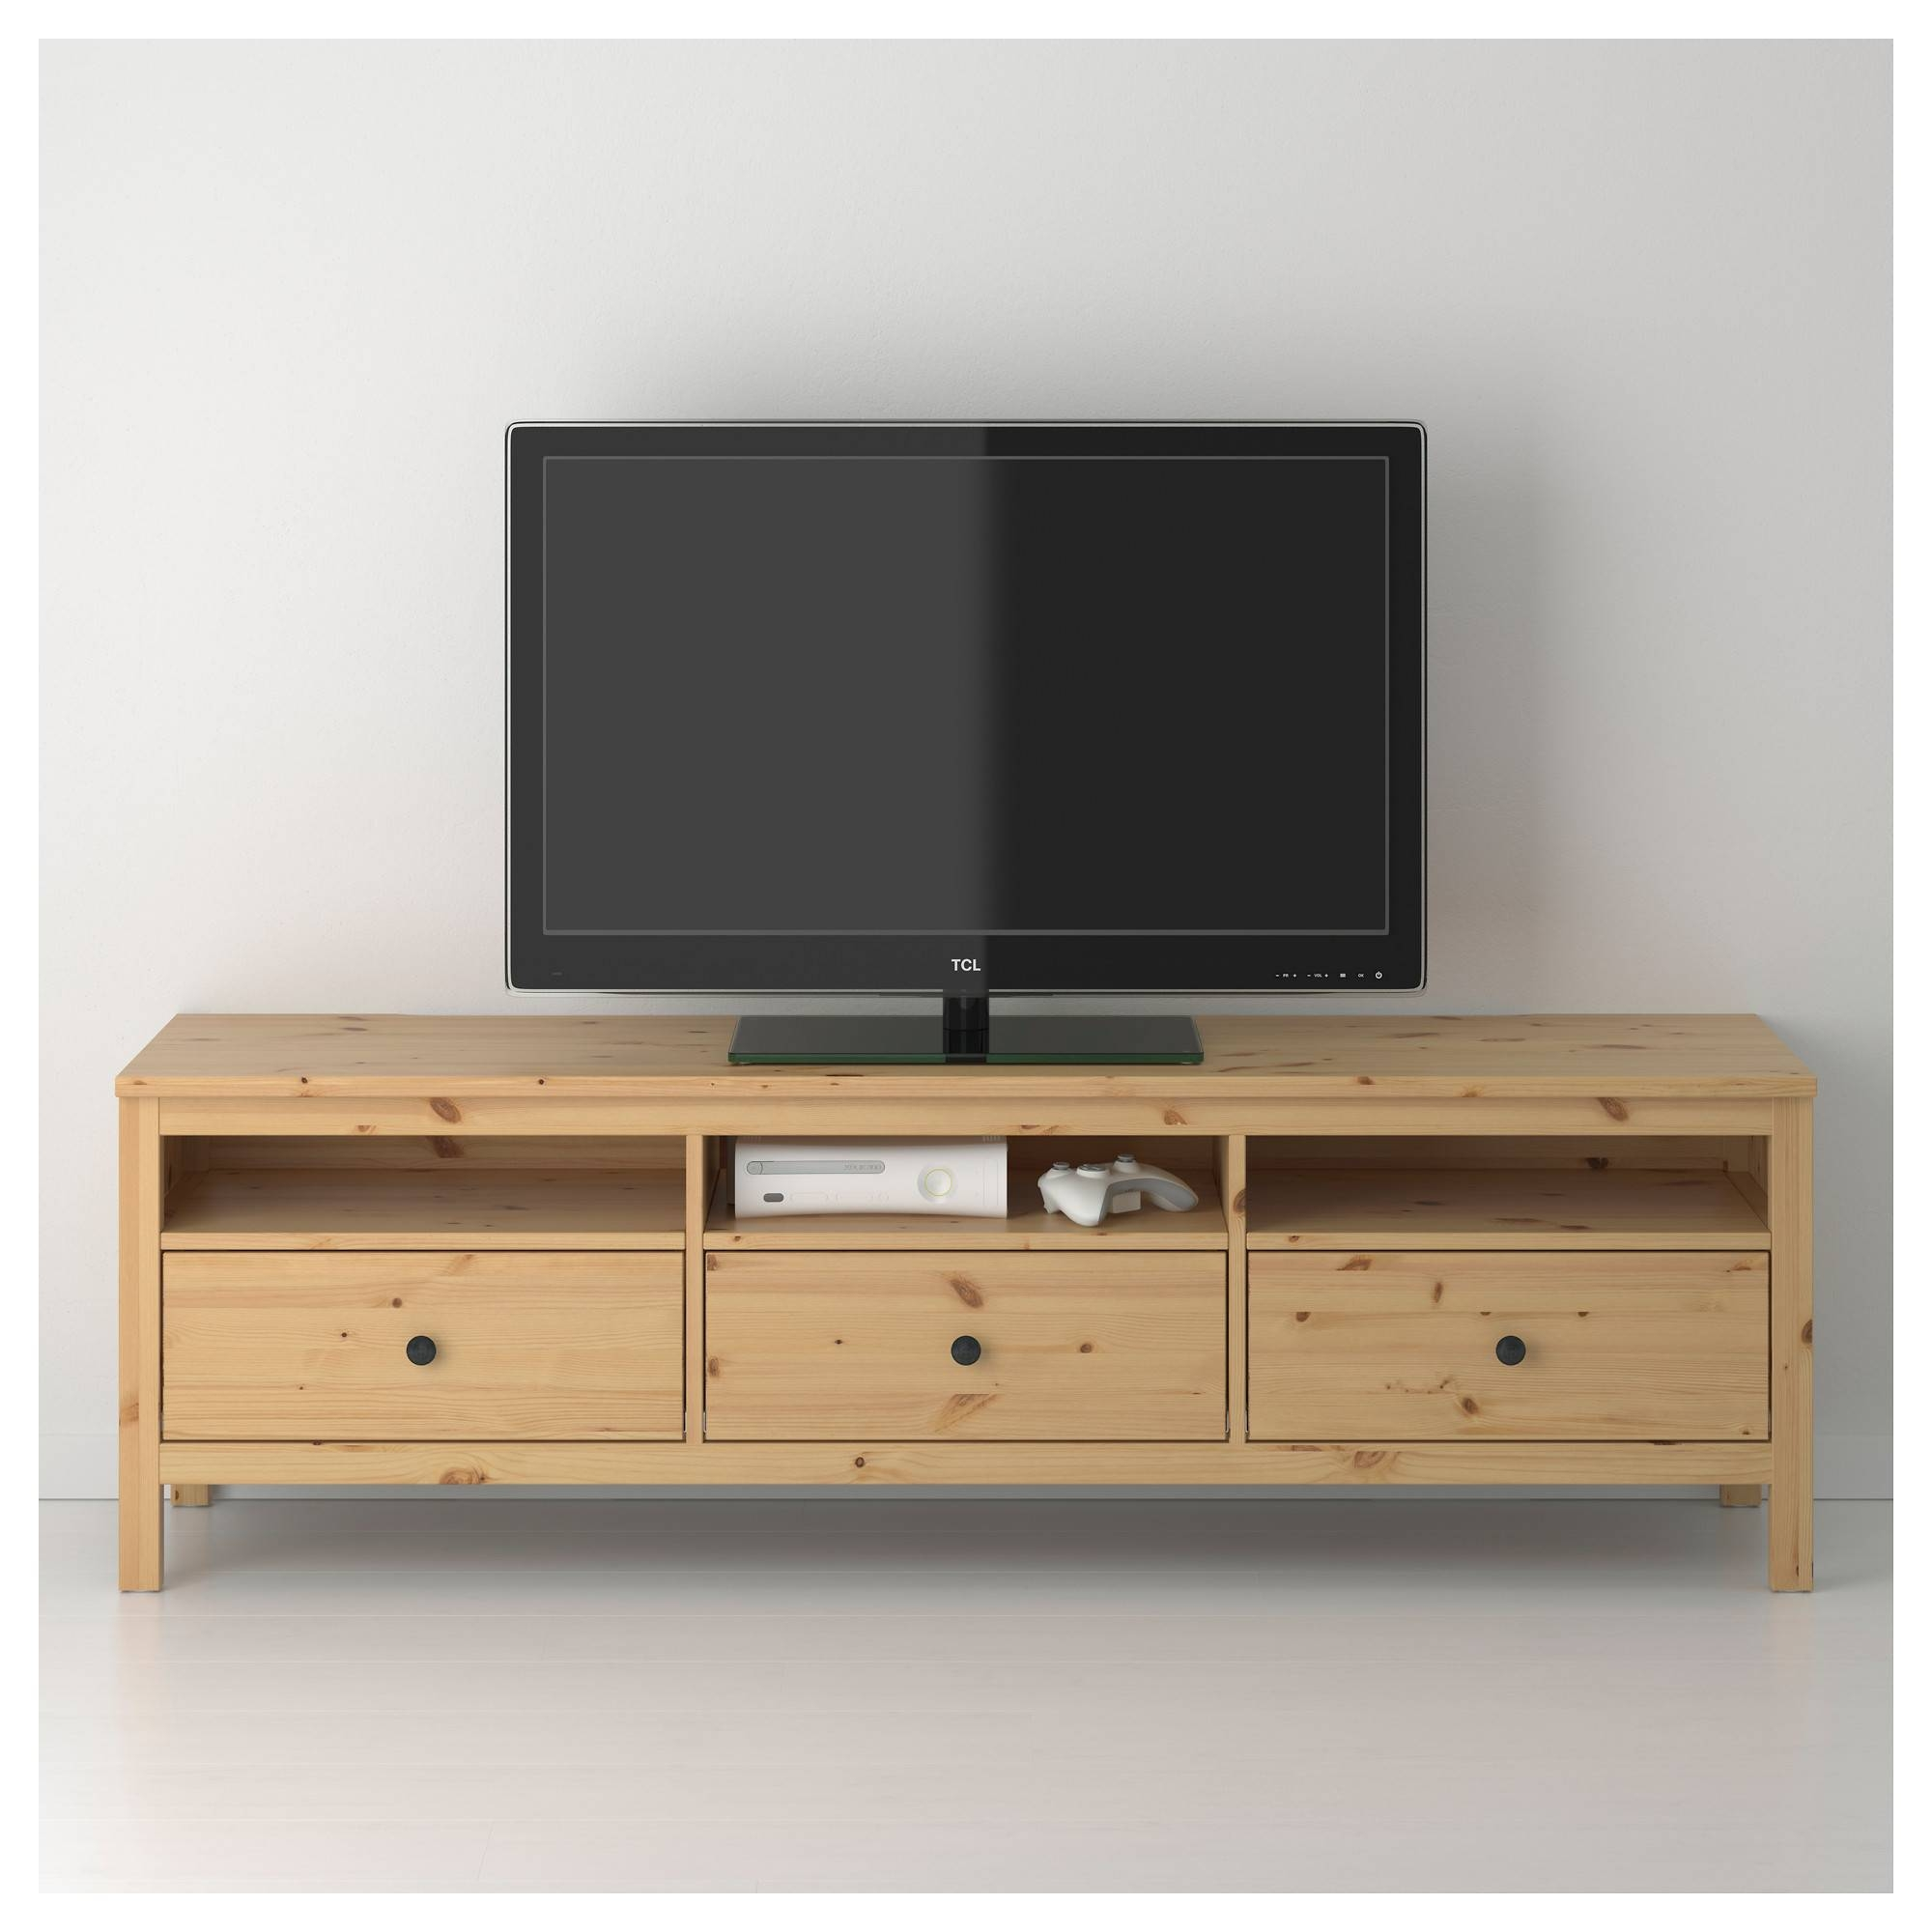 Tv Stands & Tv Units | Ikea intended for Bench Tv Stands (Image 14 of 15)